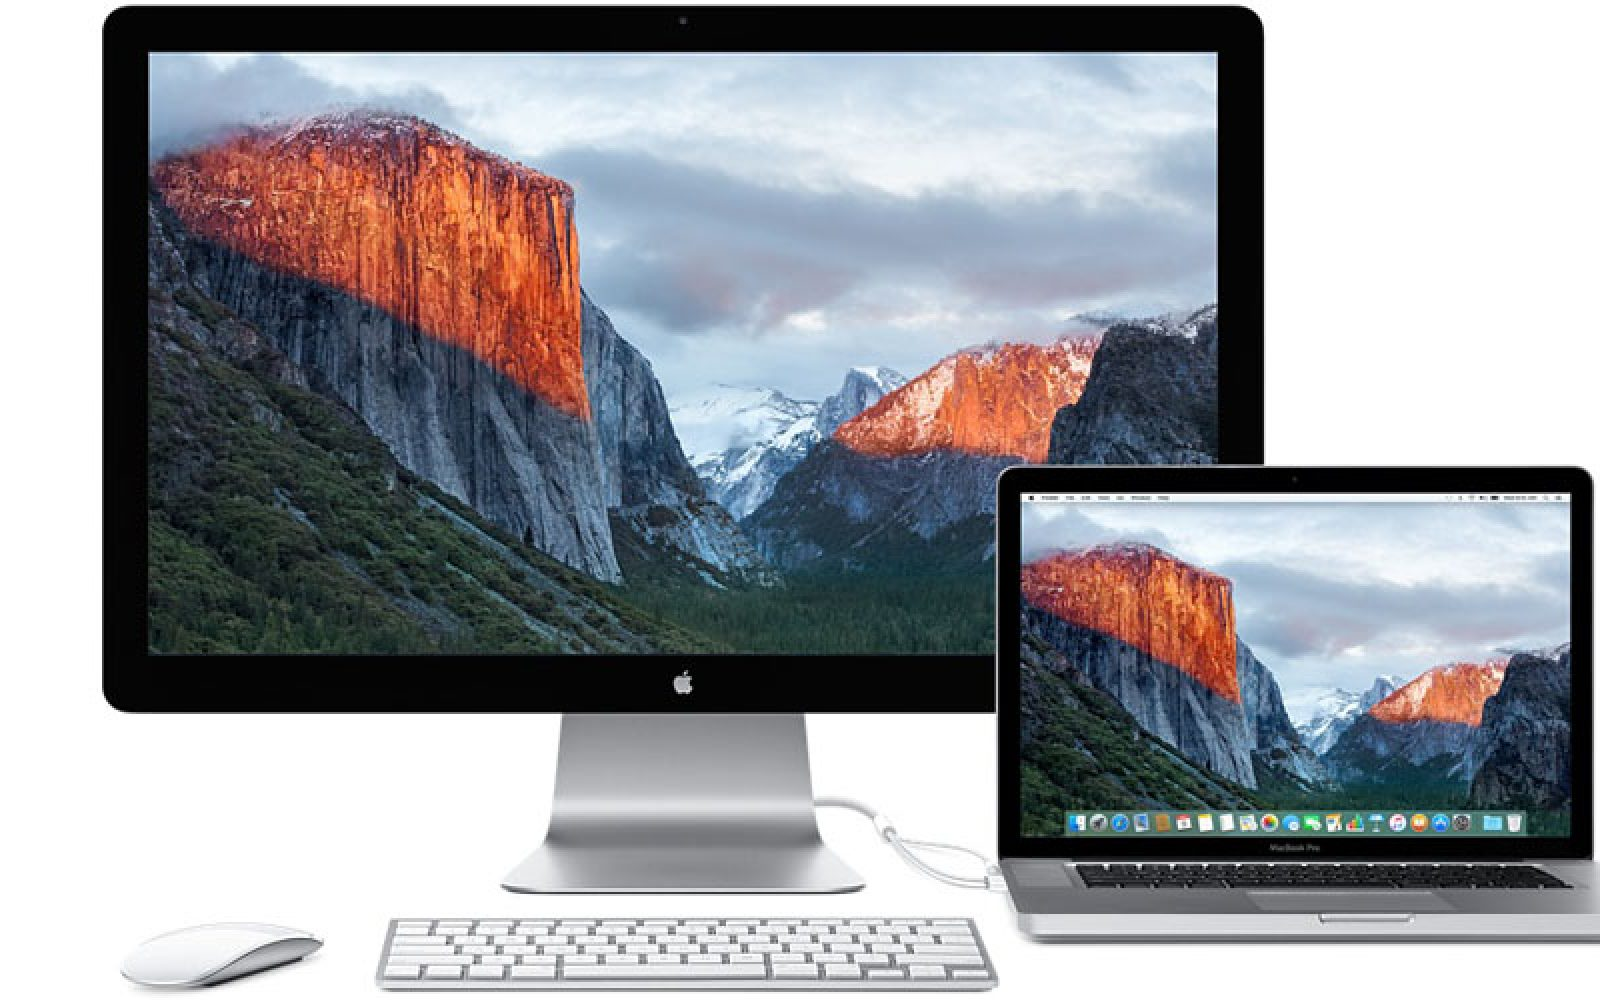 As Apple sells out of remaining Thunderbolt displays, users